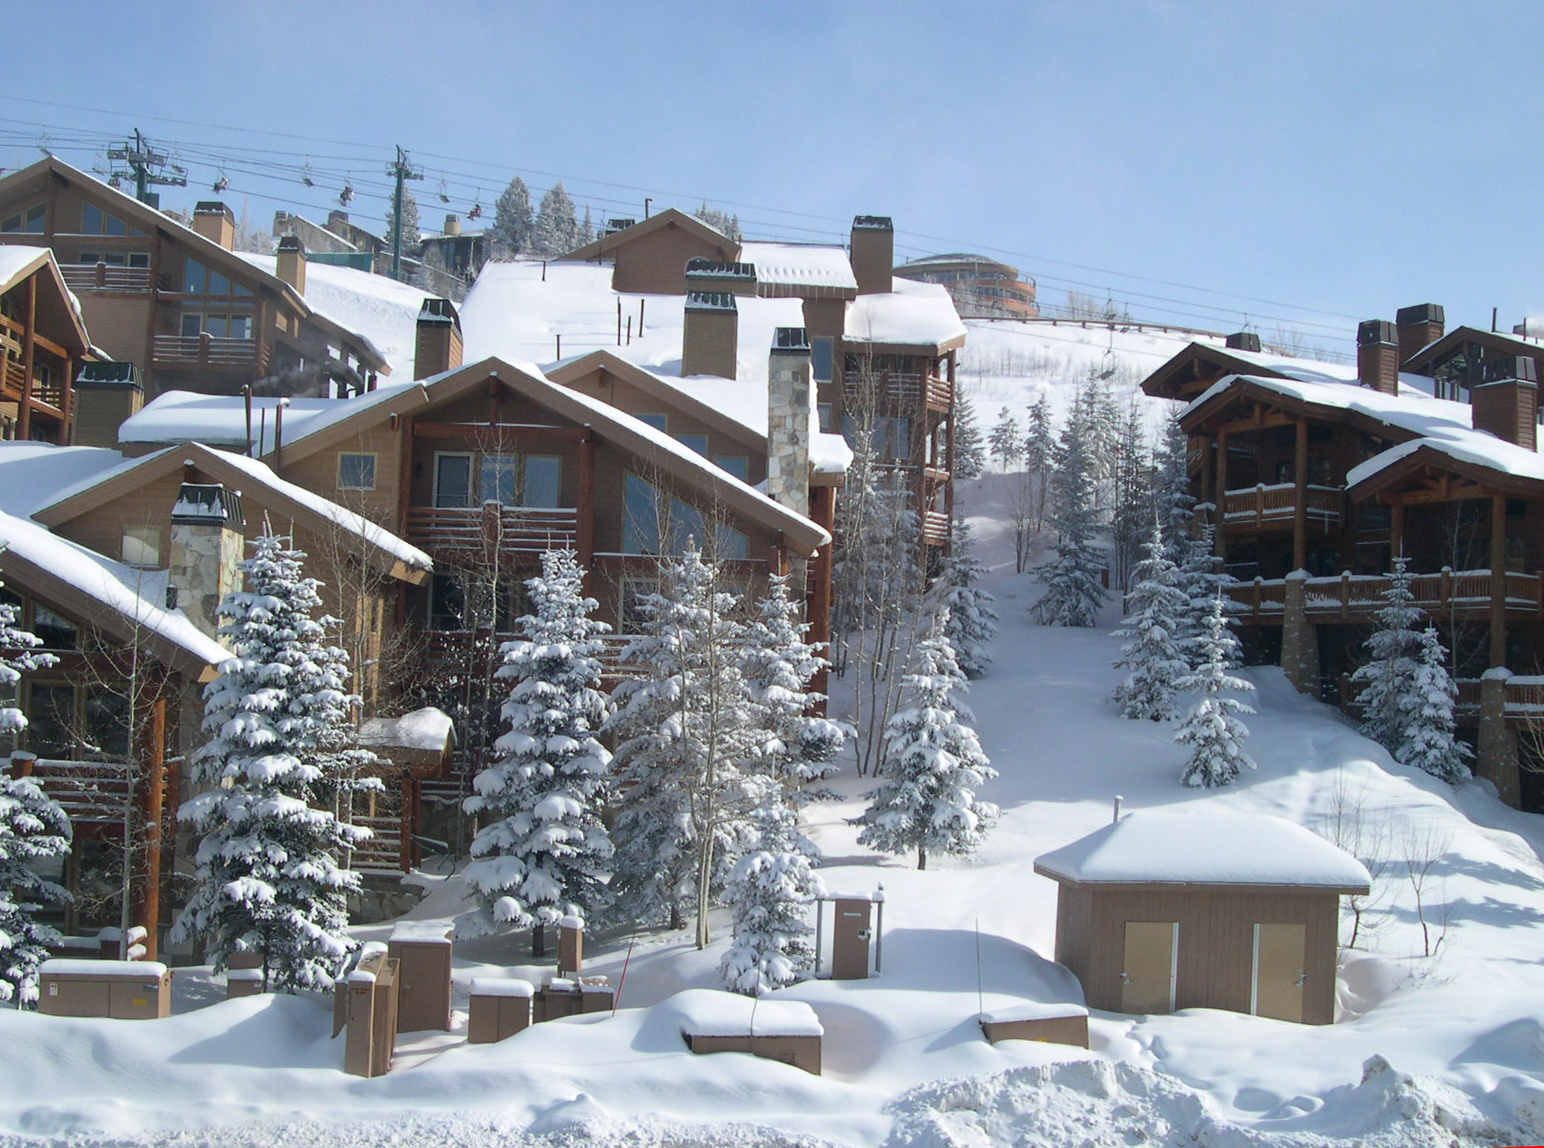 Battery Heated Clothing >> Five Tips for Choosing a Ski Resort